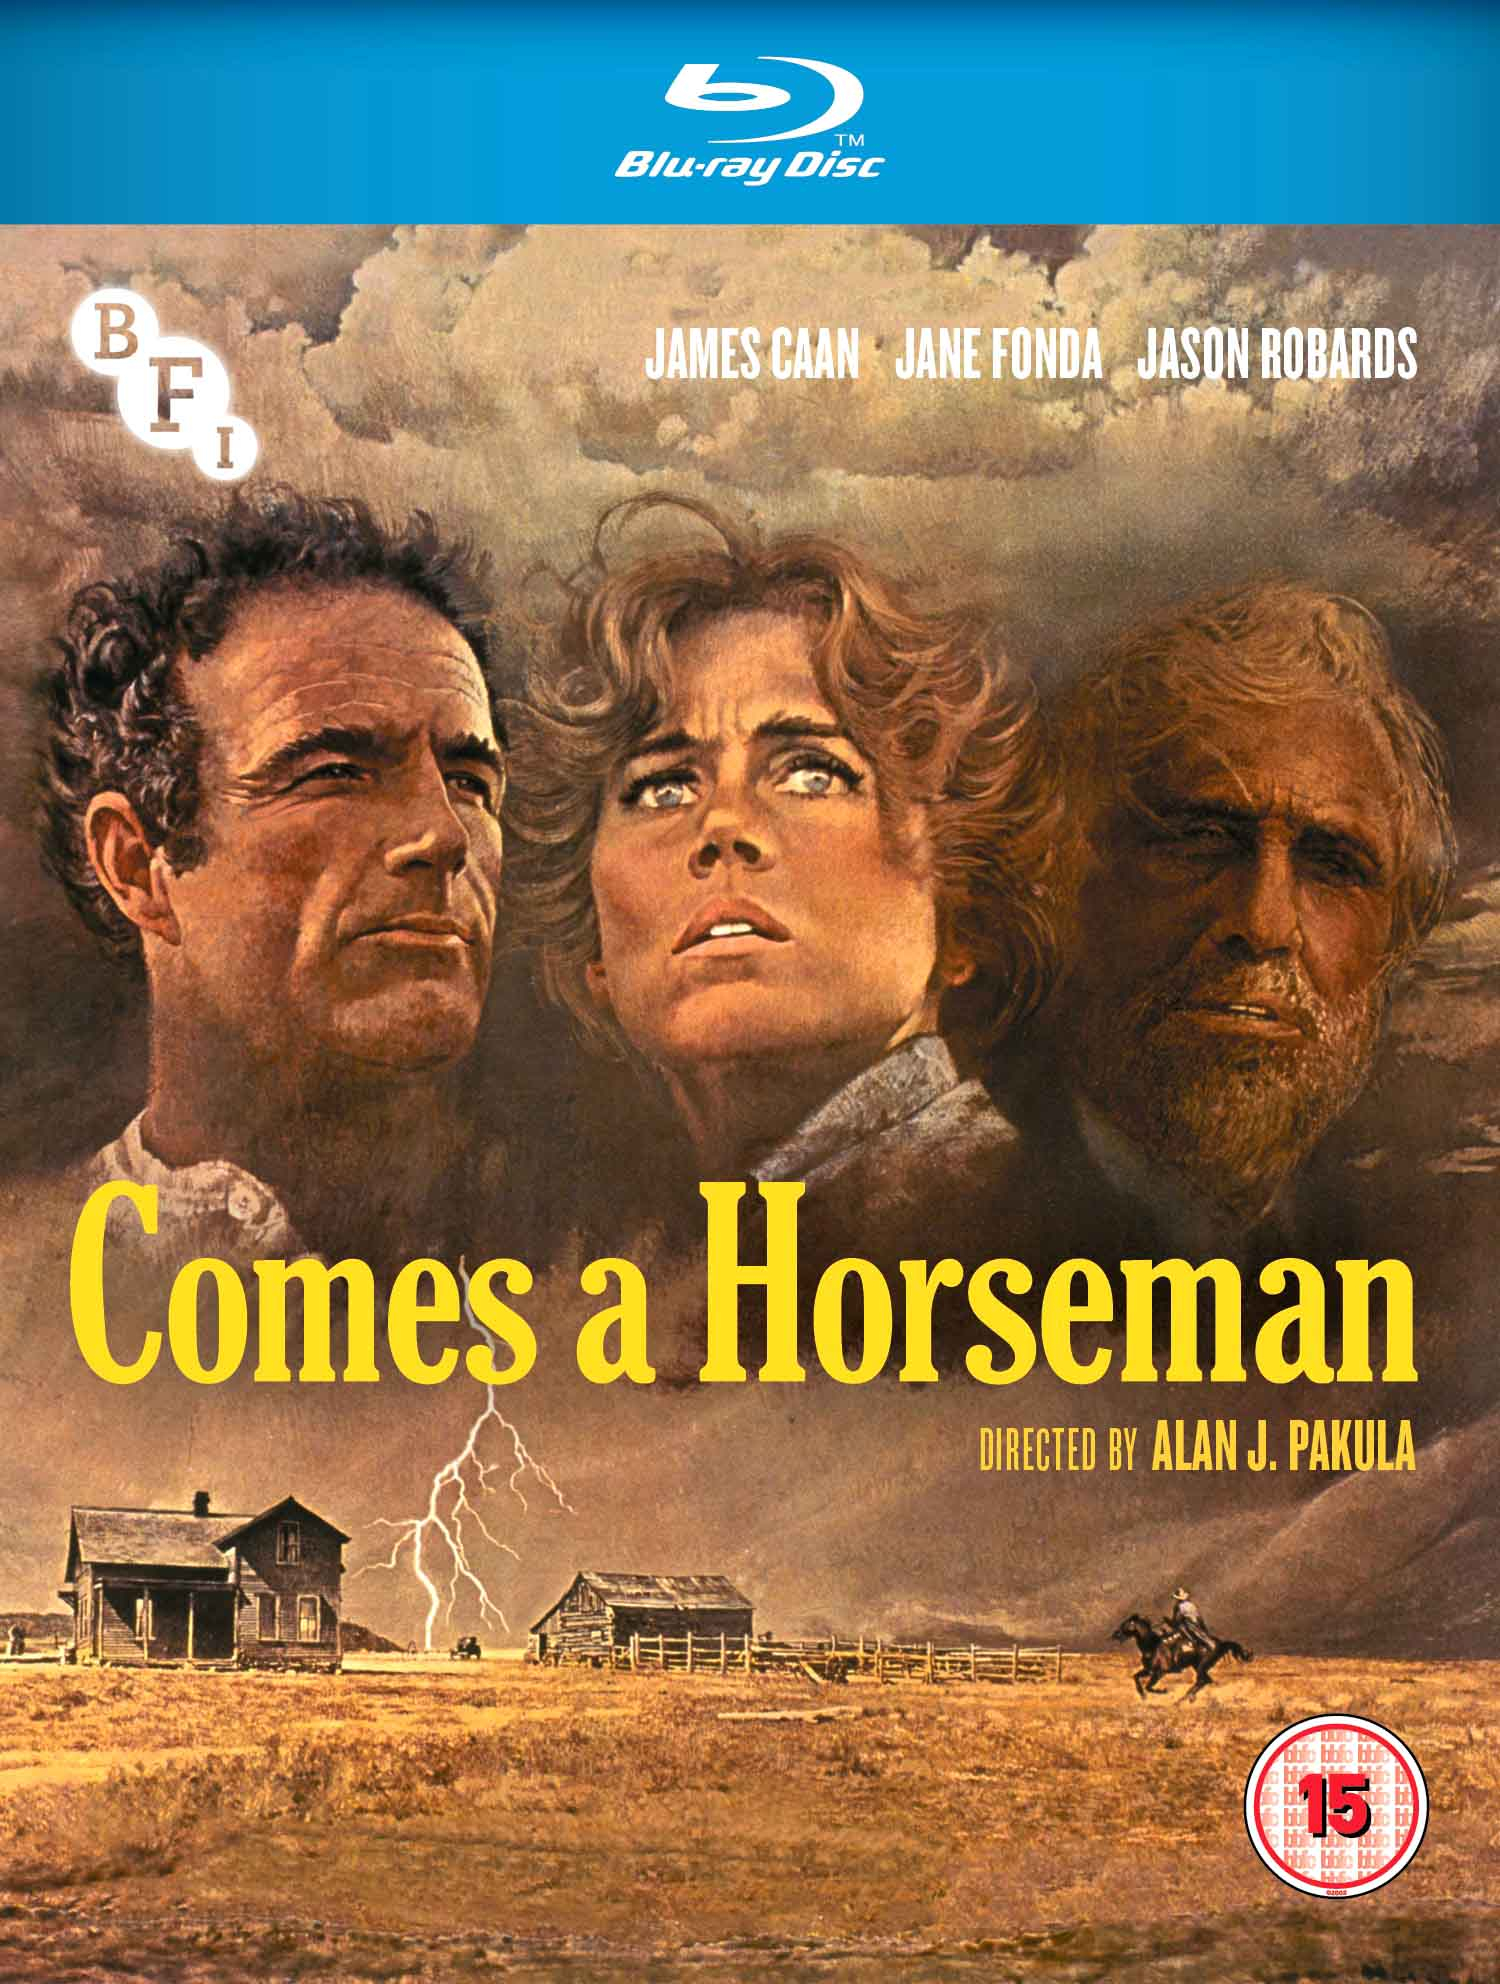 Buy PRE-ORDER Comes a Horseman (Blu-ray)